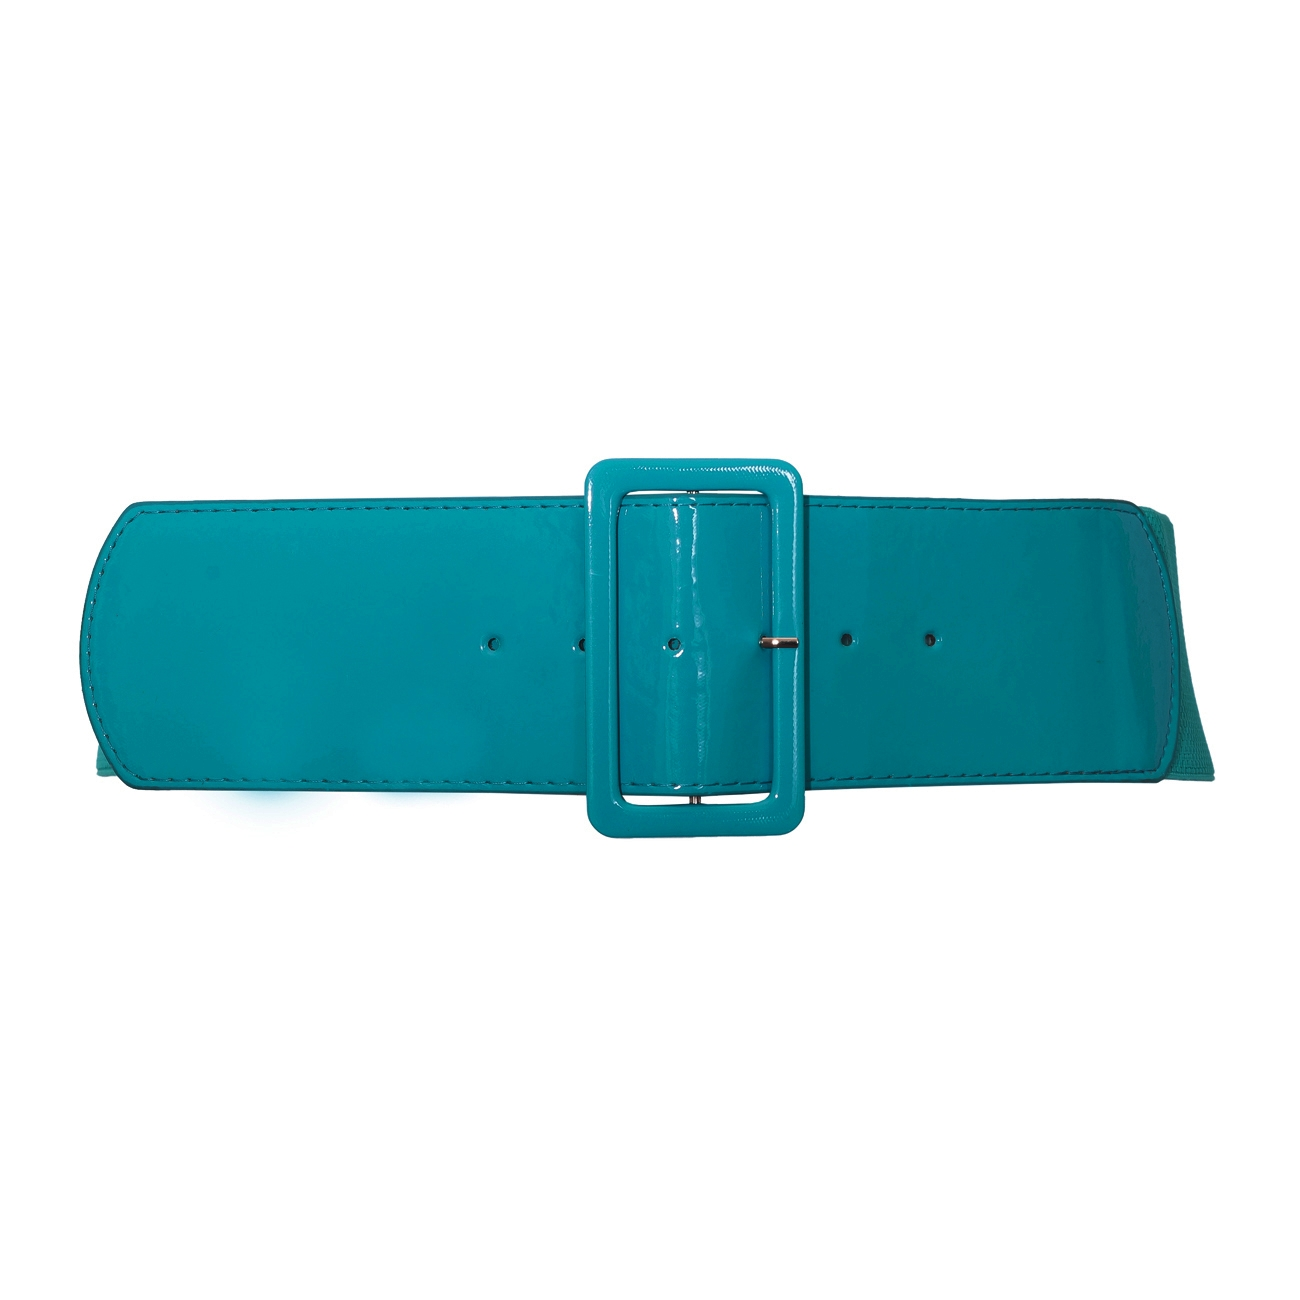 s wide patent leather fashion belt teal evogues